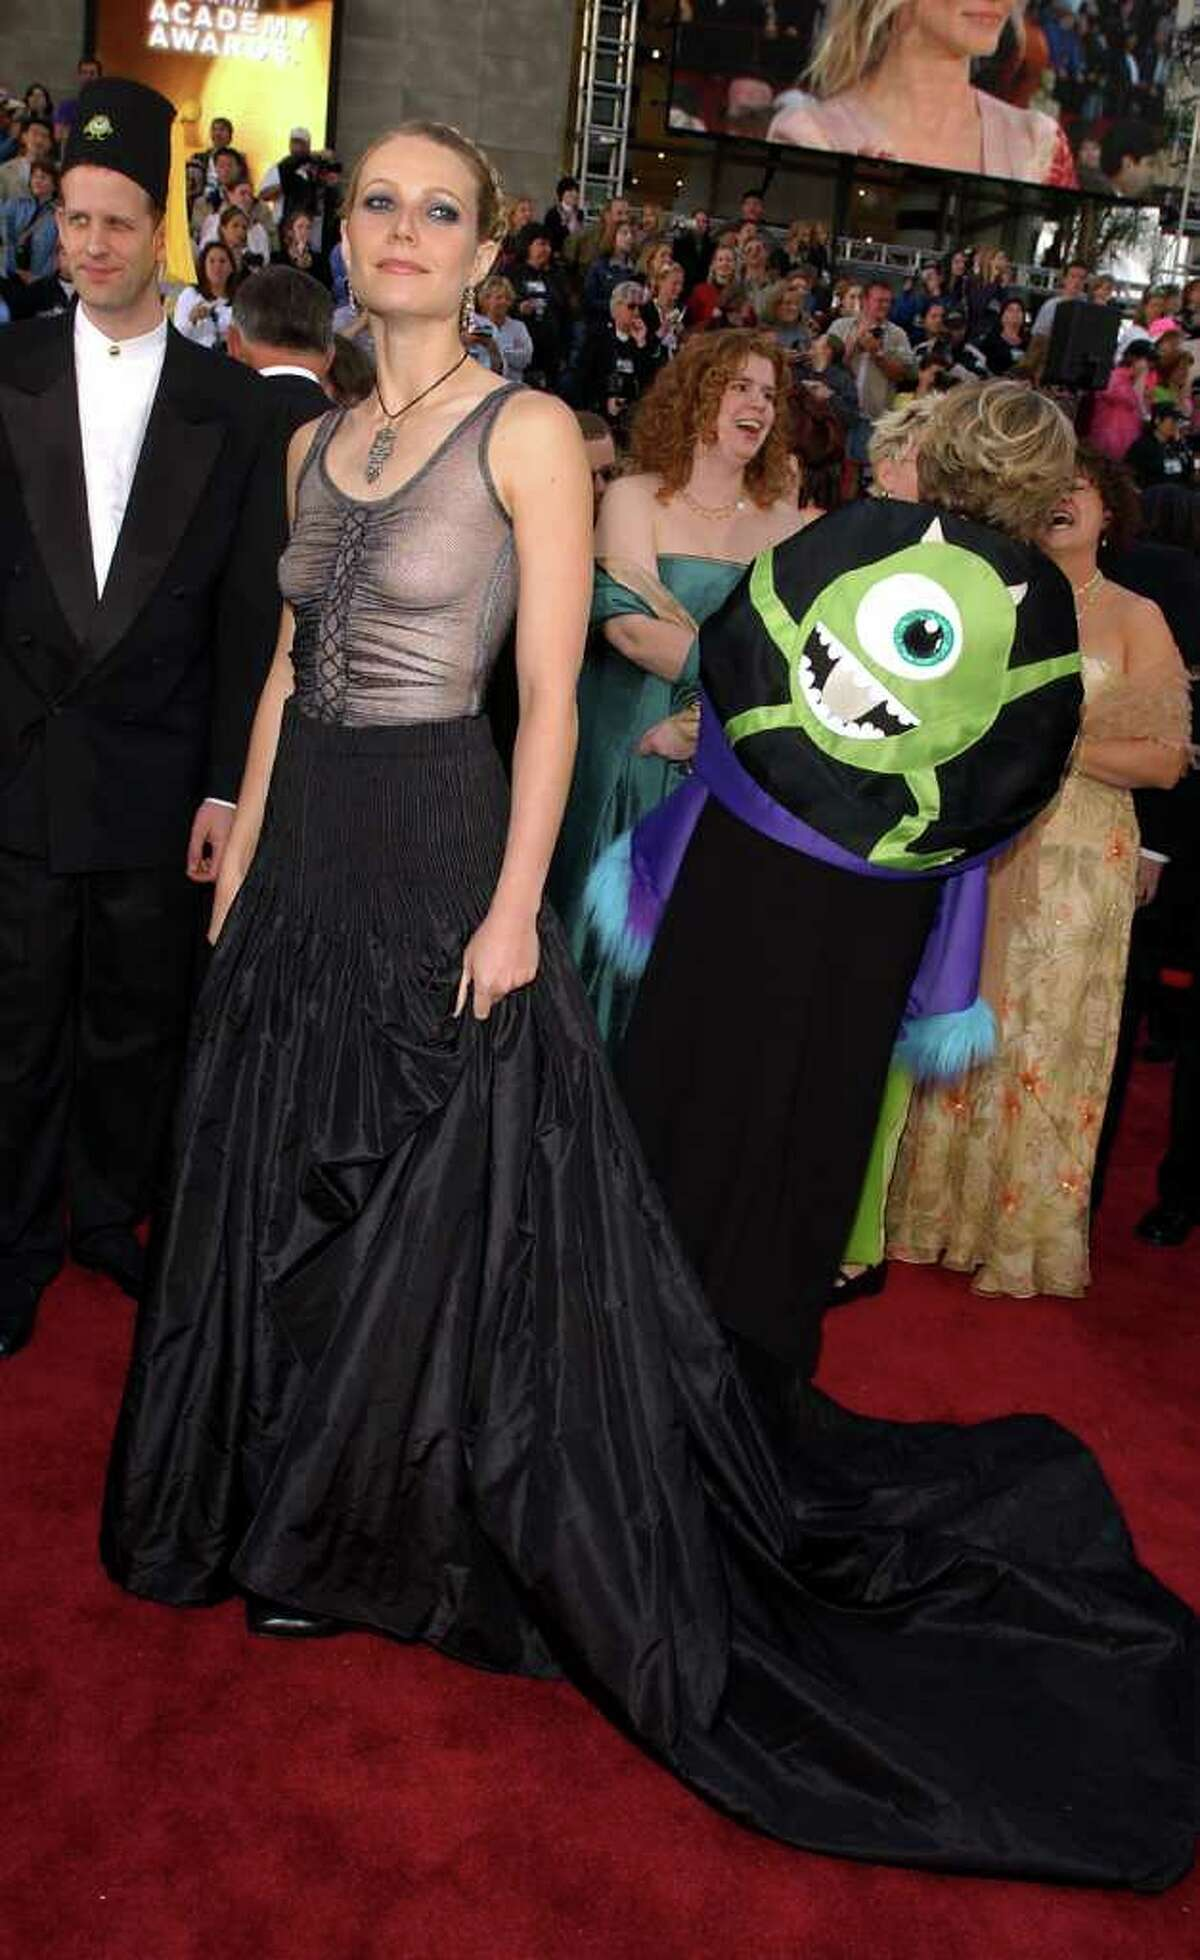 9. Gwyneth Paltrow, 2002 Love her or mostly hate her, Paltrow arrived at the Oscars in a see-through Christian Lacroix Goth-inspired number that left her boobs lopsided. Girlfriend, a bra would have been a good idea.